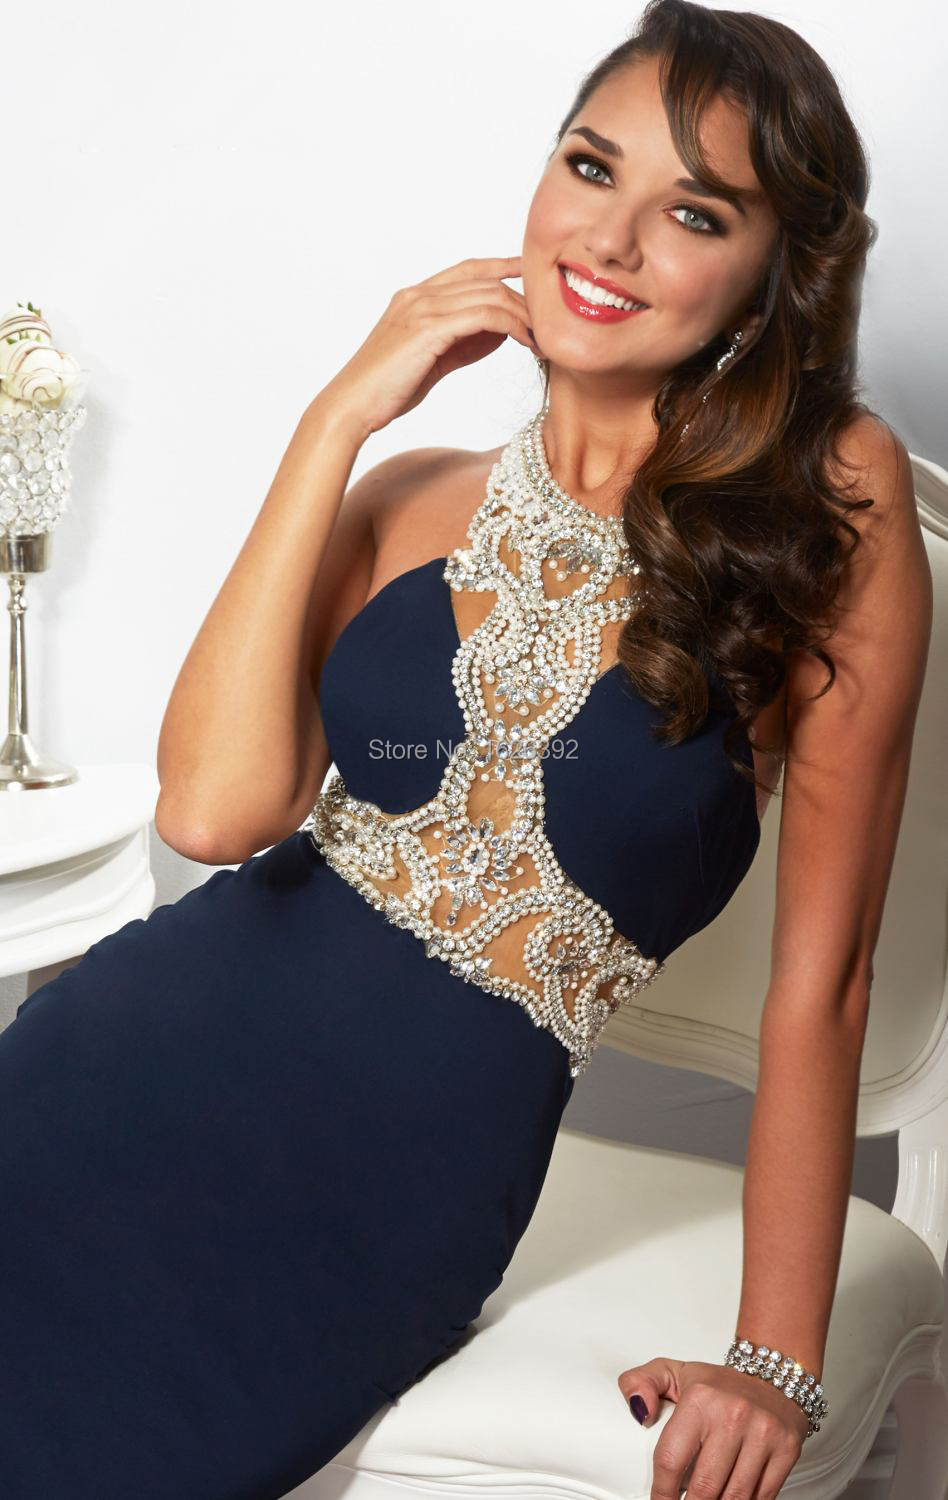 Best Sale Exquisite Crystal Beaded Navy Blue Mermaid Dresses Women Formal  Evening Gown Halter Backless-in Evening Dresses from Weddings   Events on  ... 133c53508